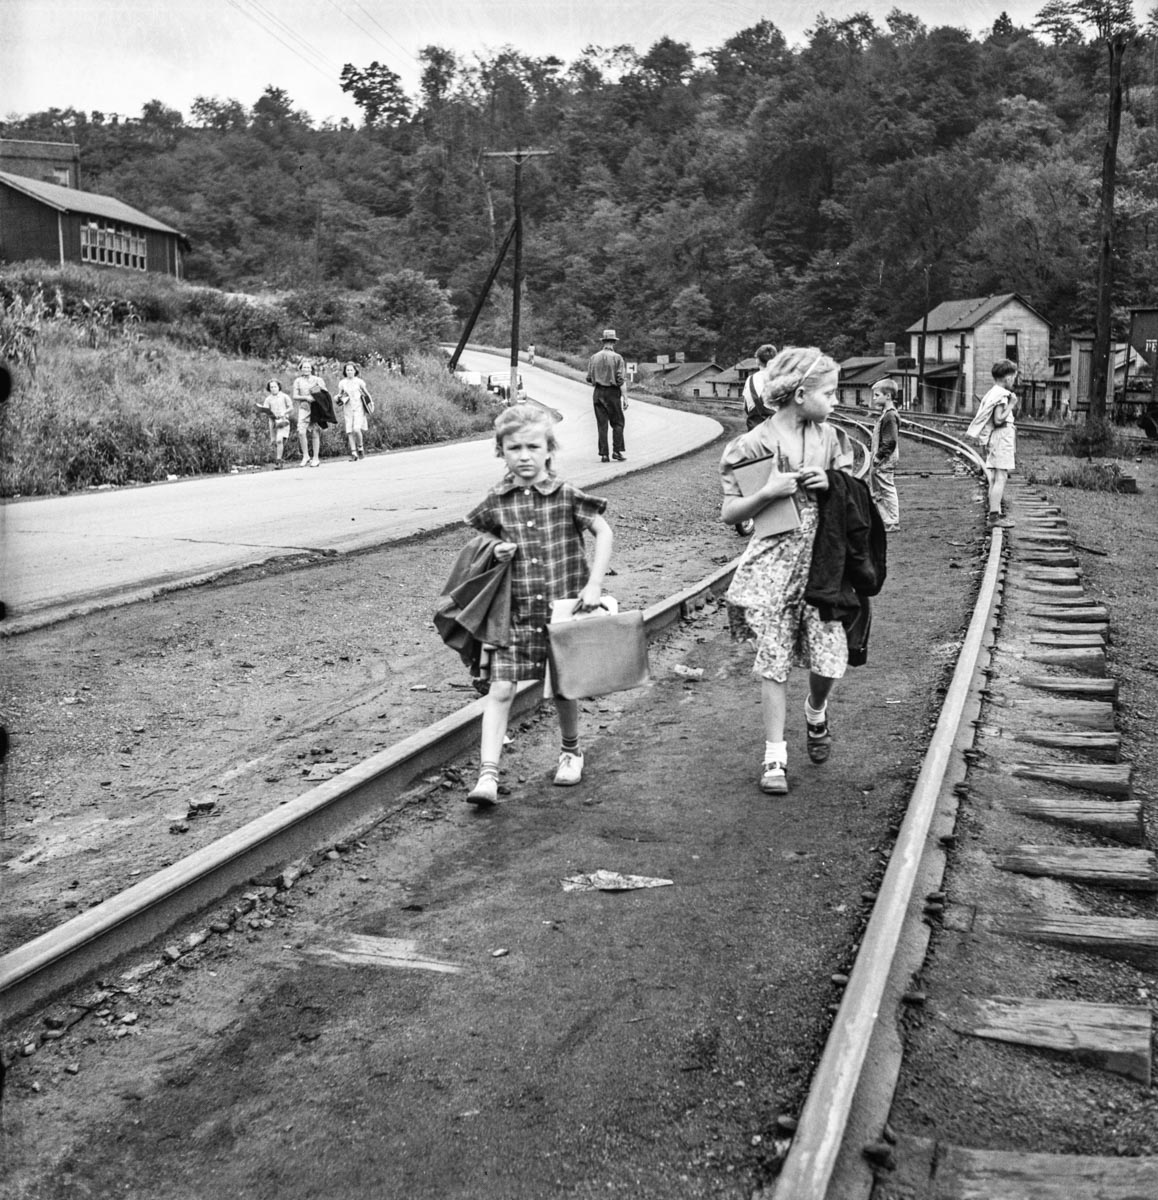 Coming home from school. Mining town, Osage, West Virginia - Marion Post Wolcott